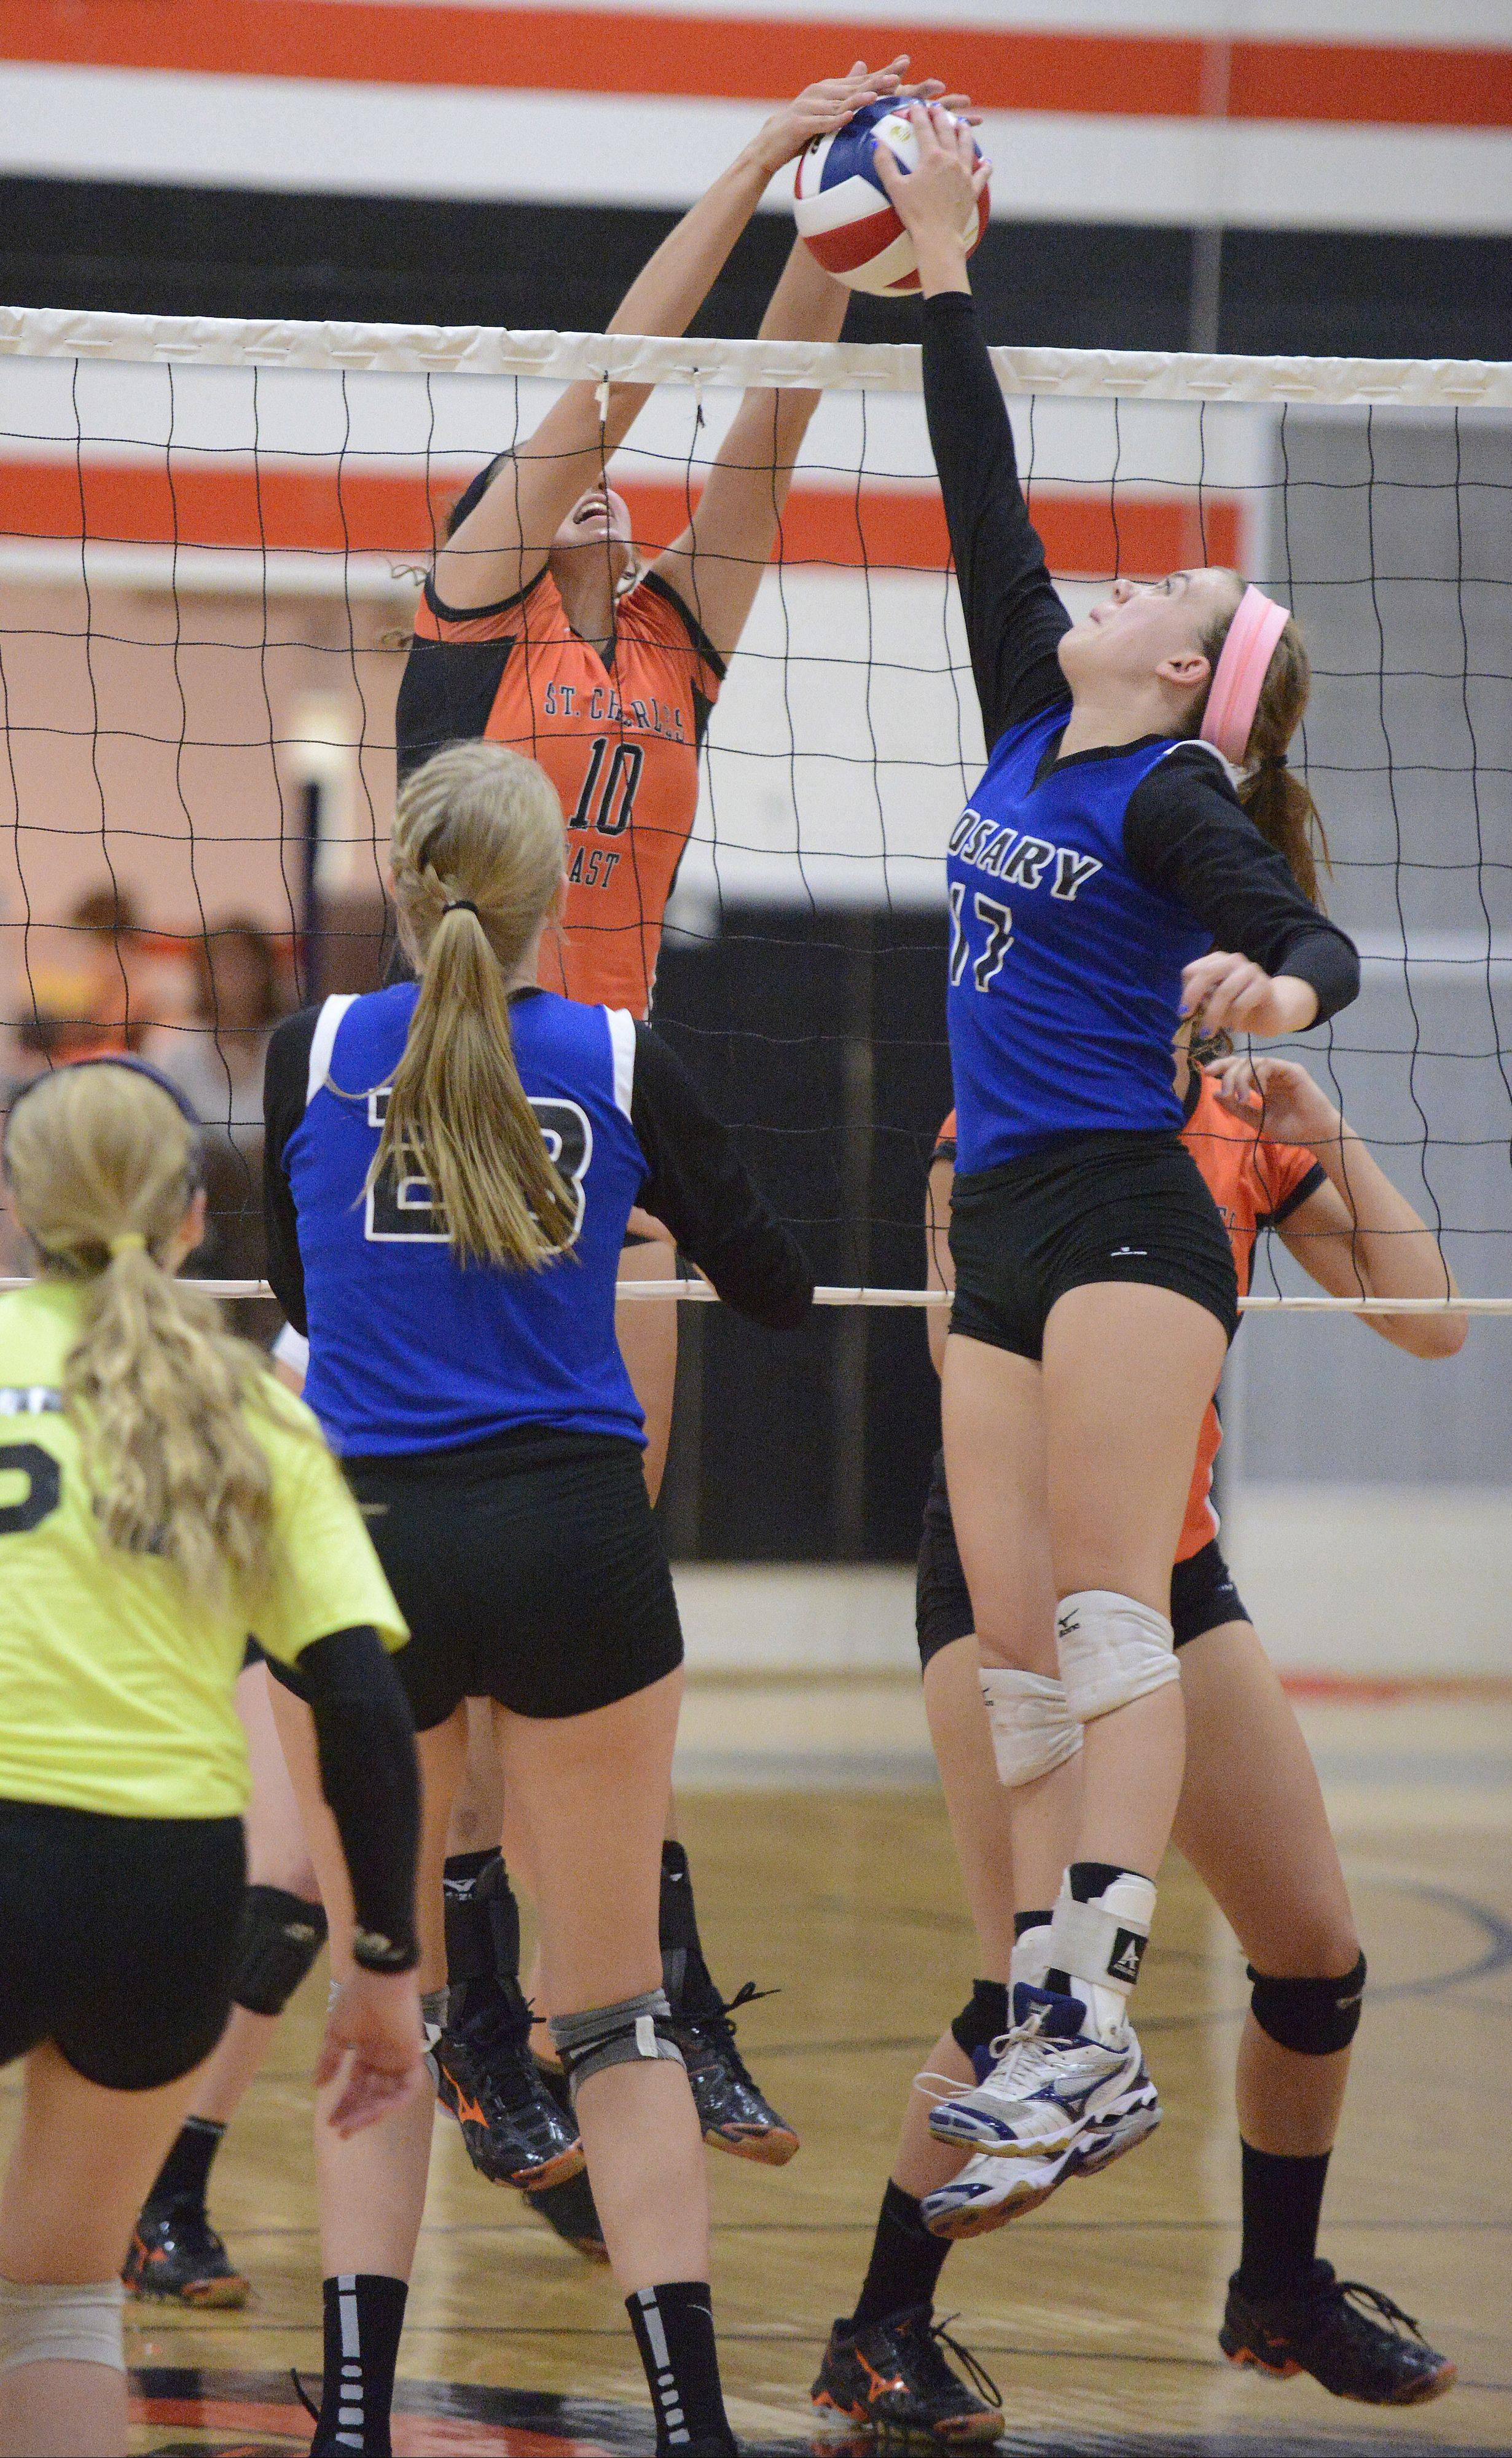 St. Charles East's Mikaela Mosquera and Rosary's Grace Konovodoff square off at the net in the third game Wednesday in St. Charles. Rosary's Michaela Ping is pictured on the left.